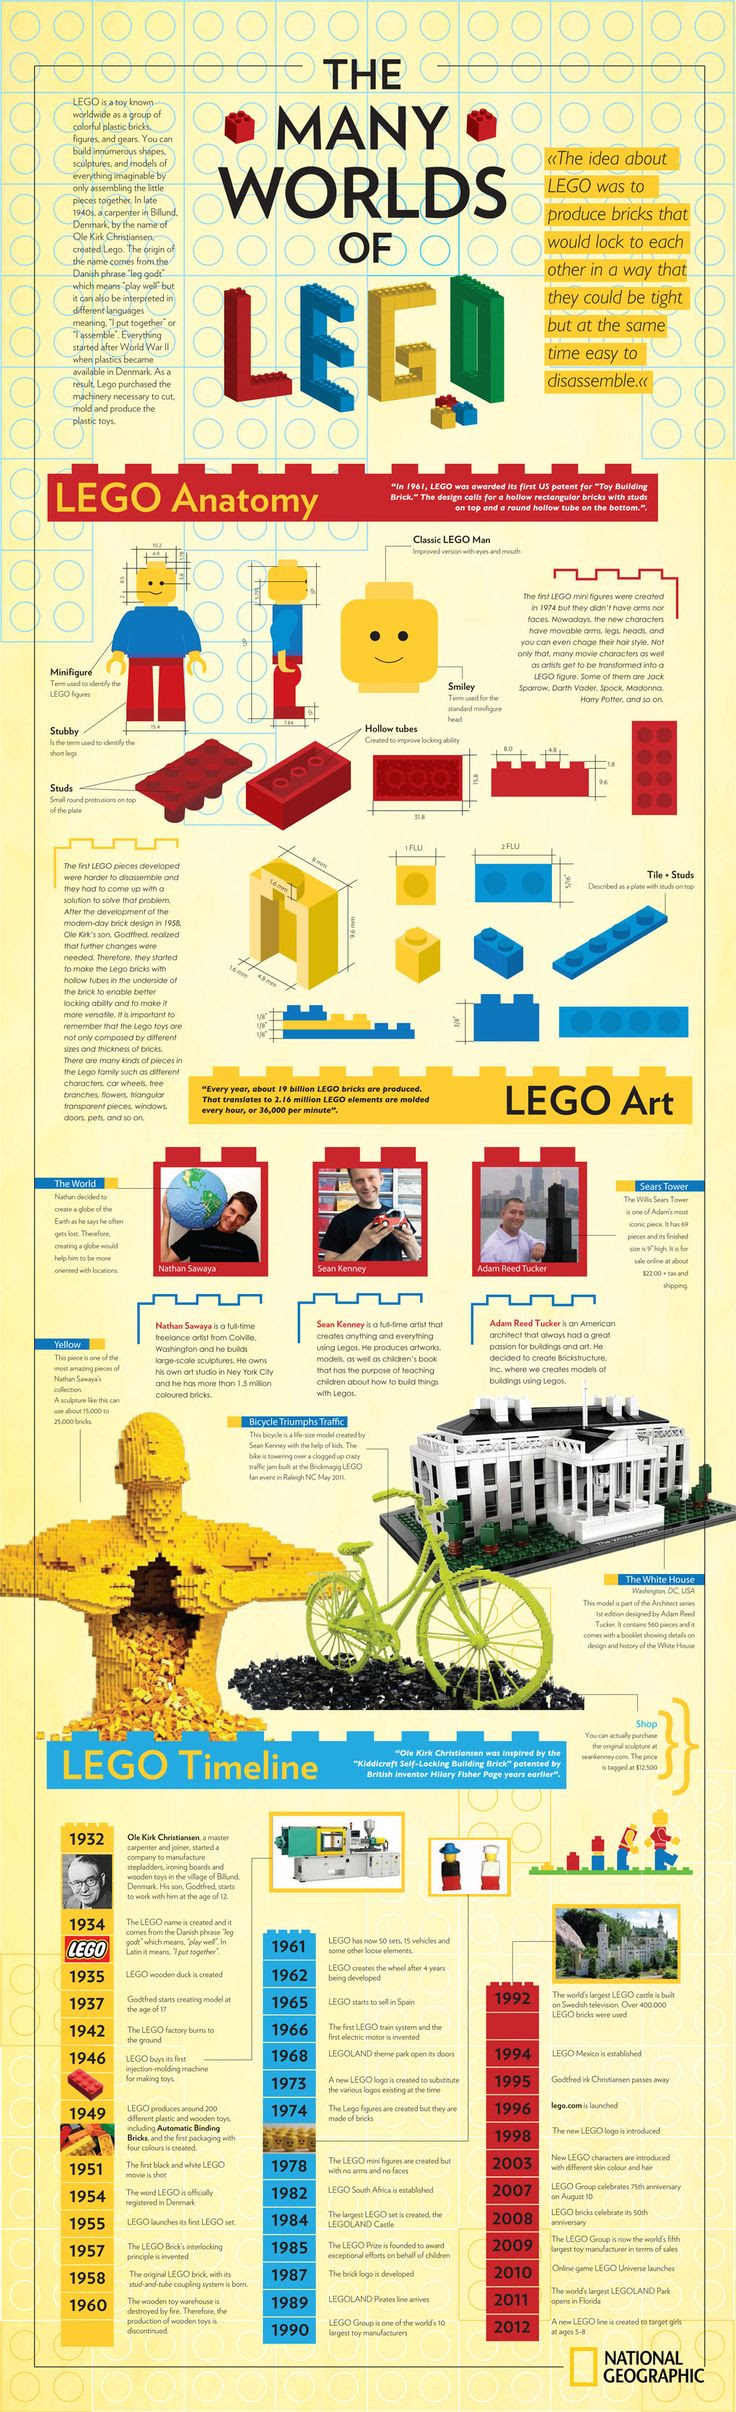 The many Worlds of LEGO #lego